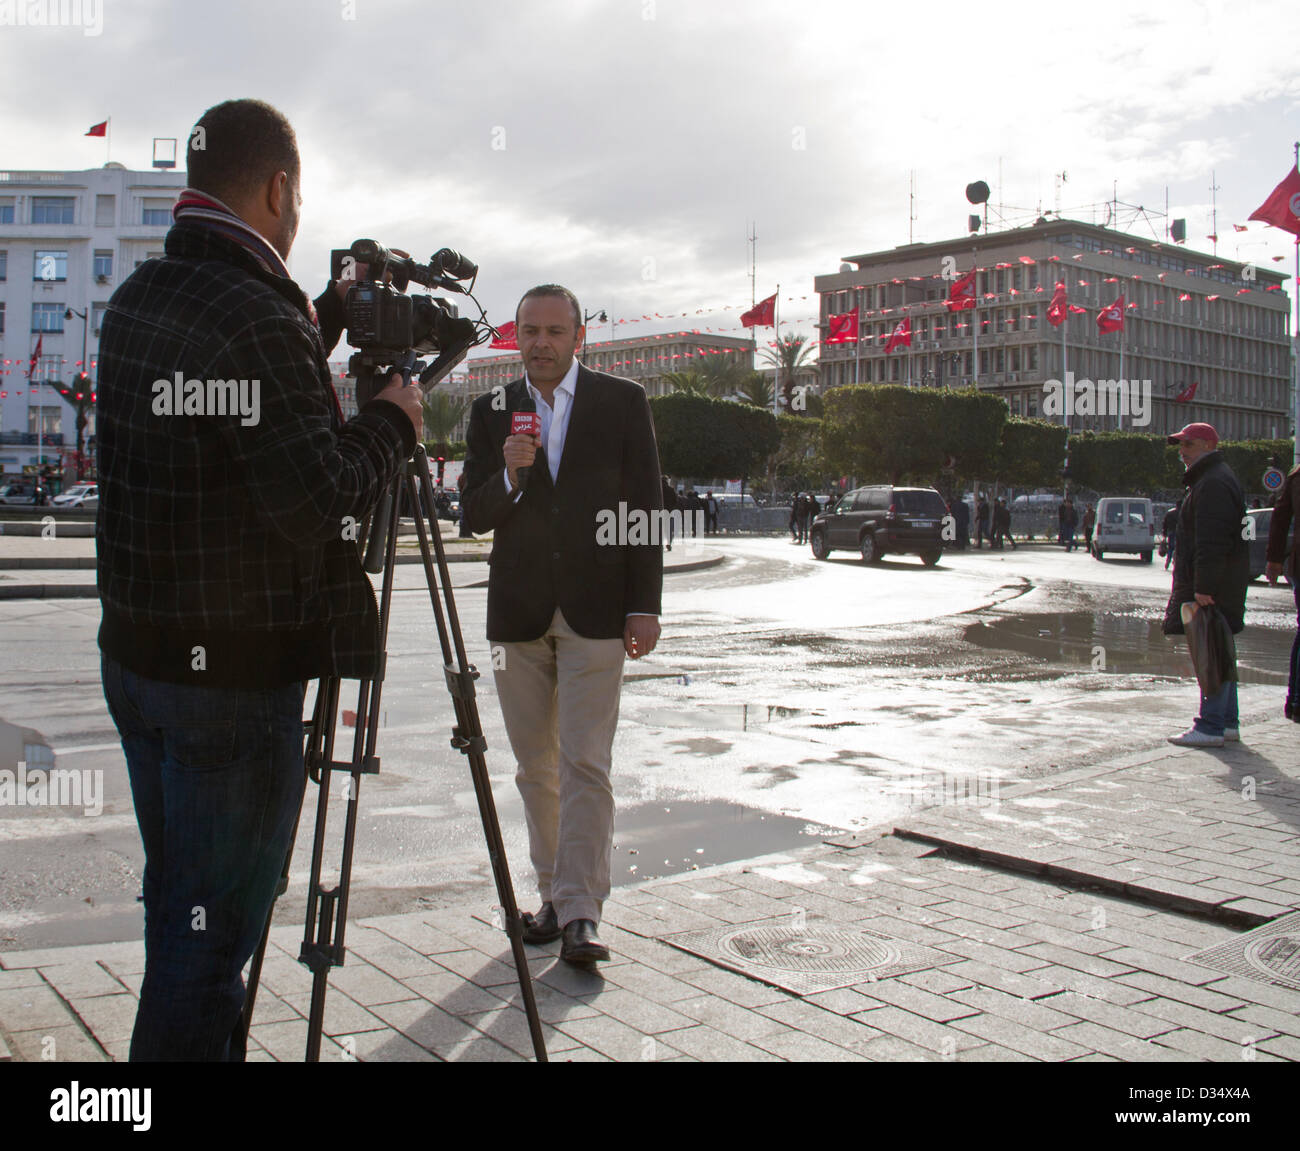 Tunis, Tunisia. BBC Arabic Reporter shooting a reportage  during the protests after Tunisian opposition leader Chokri - Stock Image